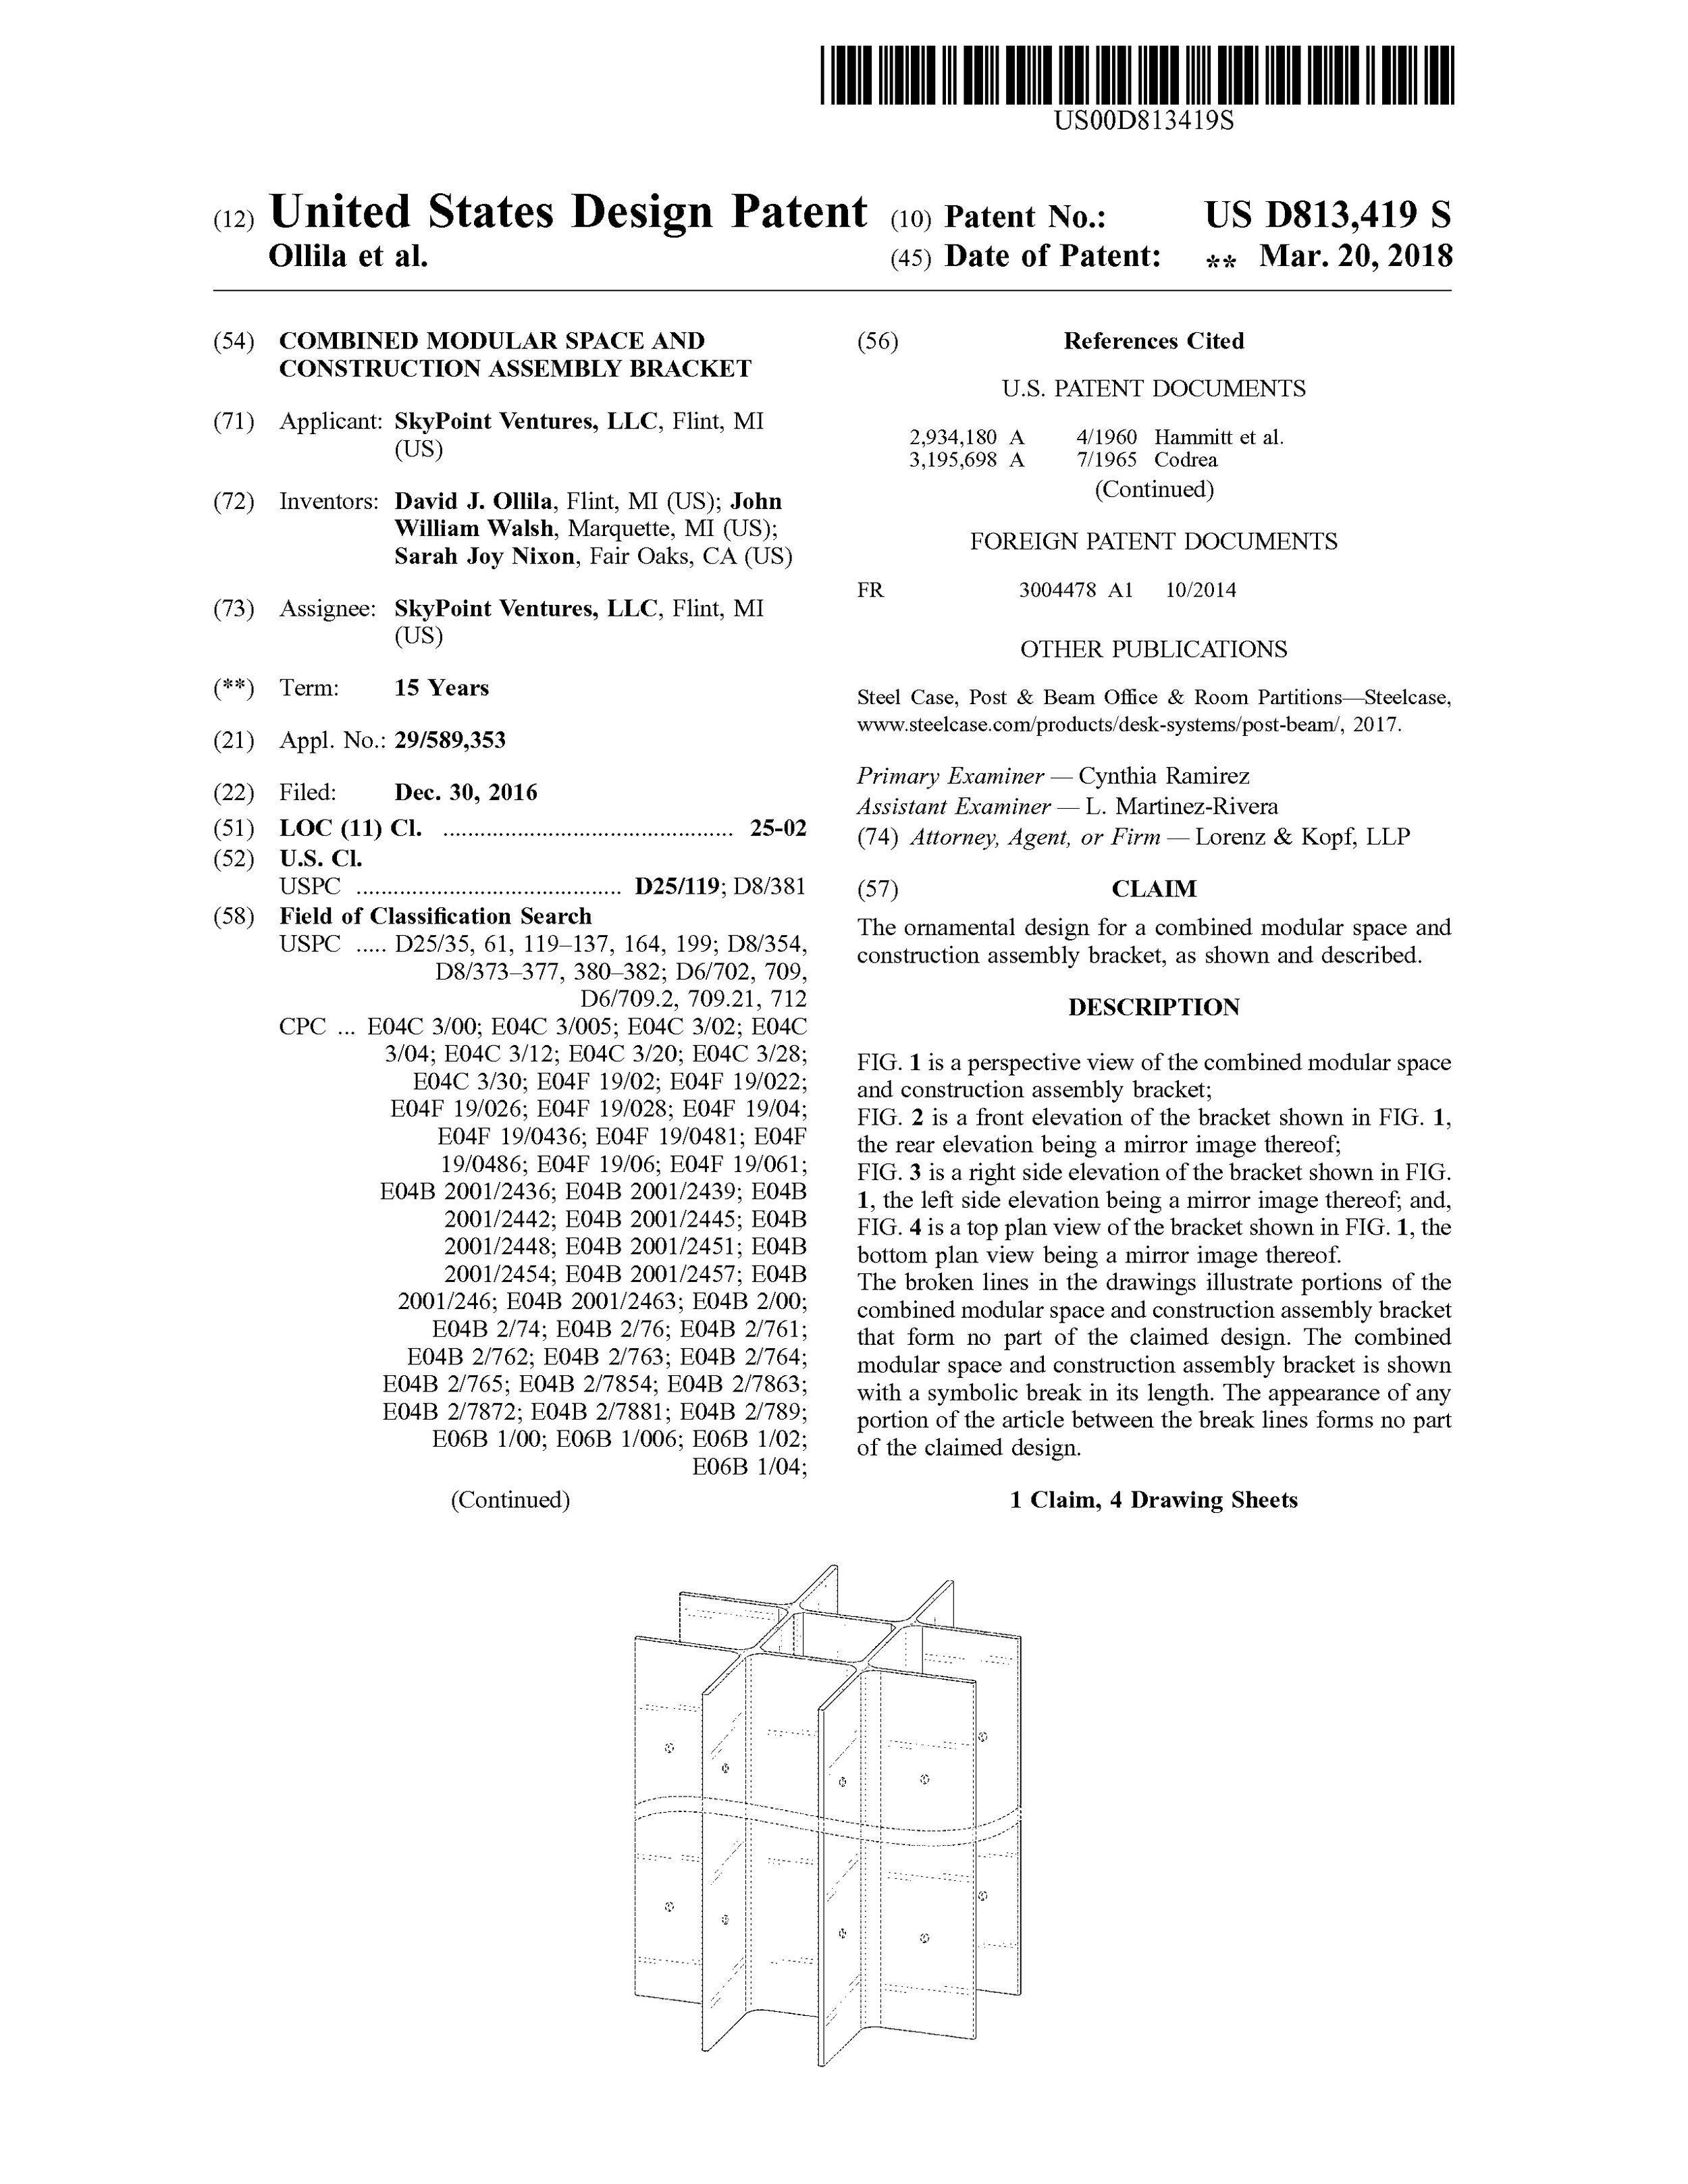 Patent_AllPages.jpg